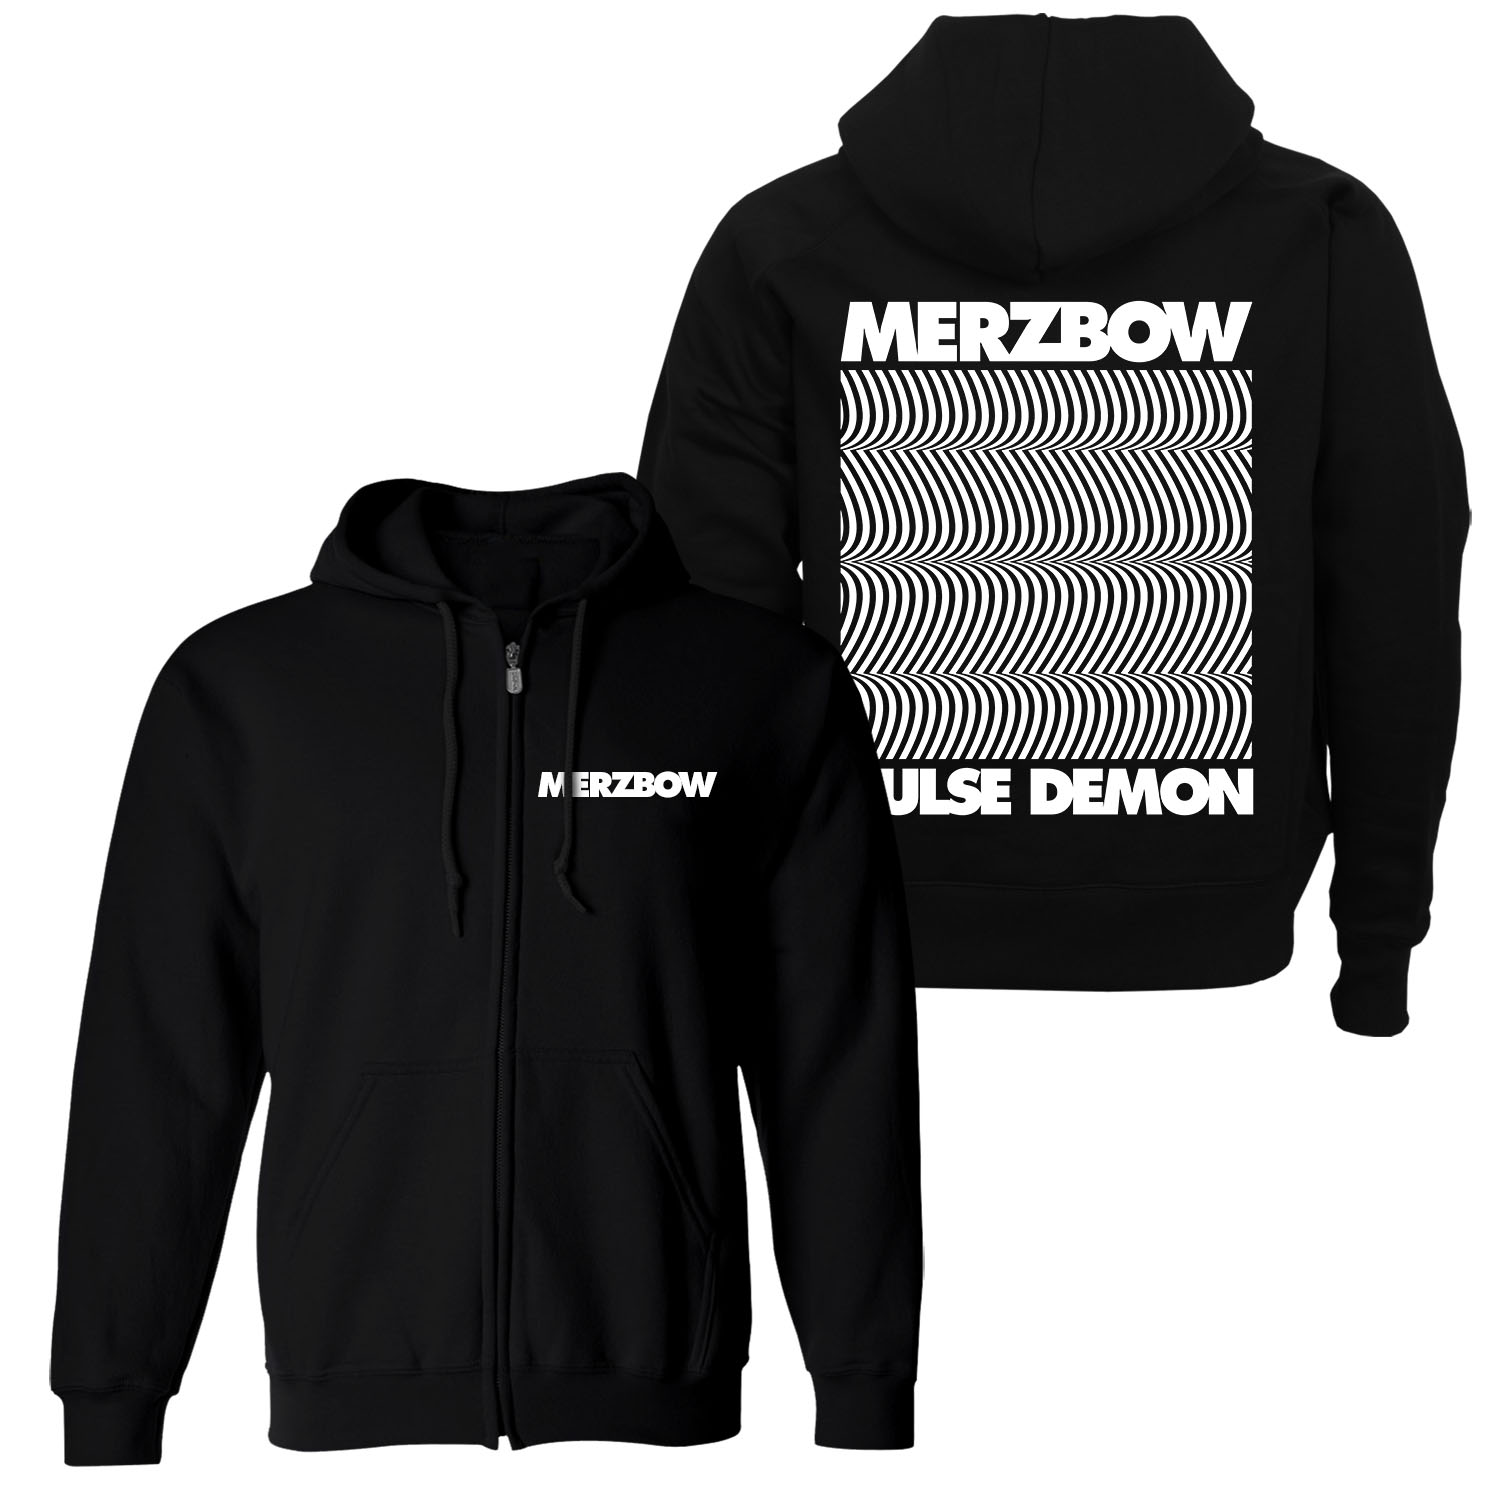 Pulse Demon Zip Up Hoodie + Reissue 2LP Bundle